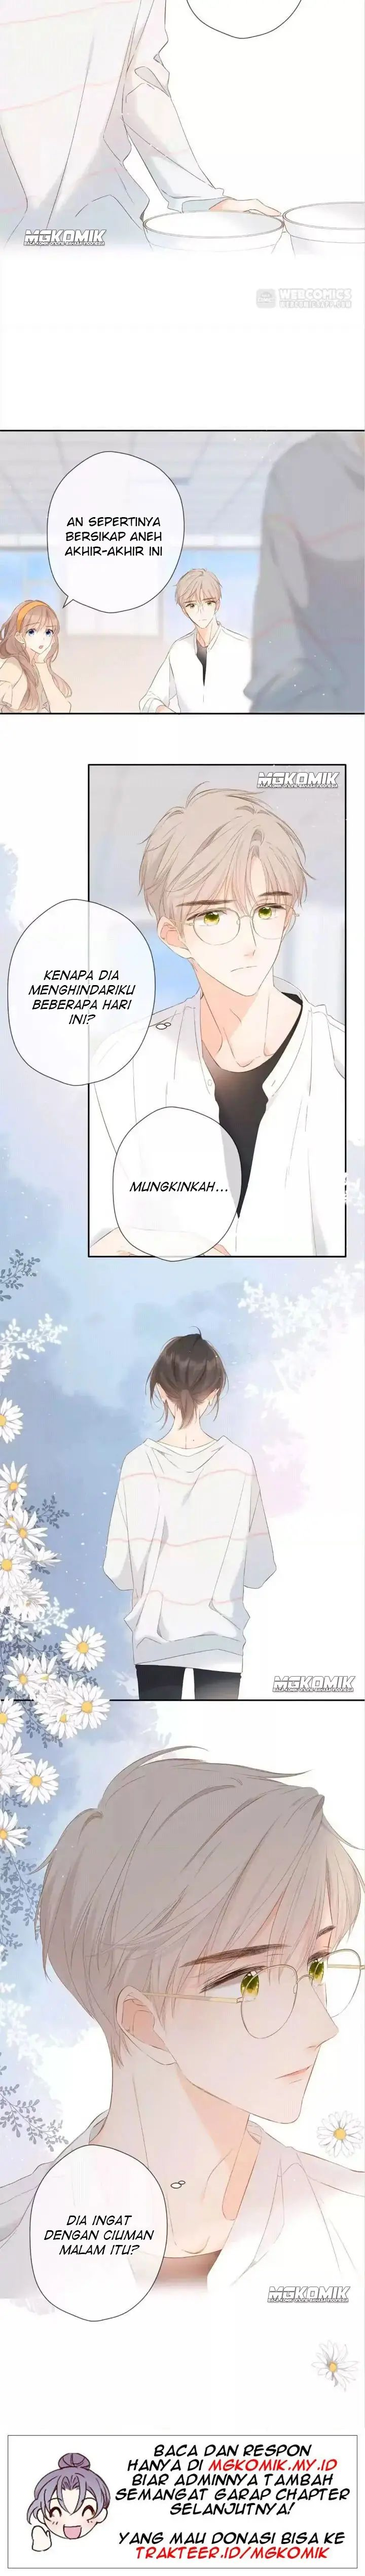 Once More Chapter 34